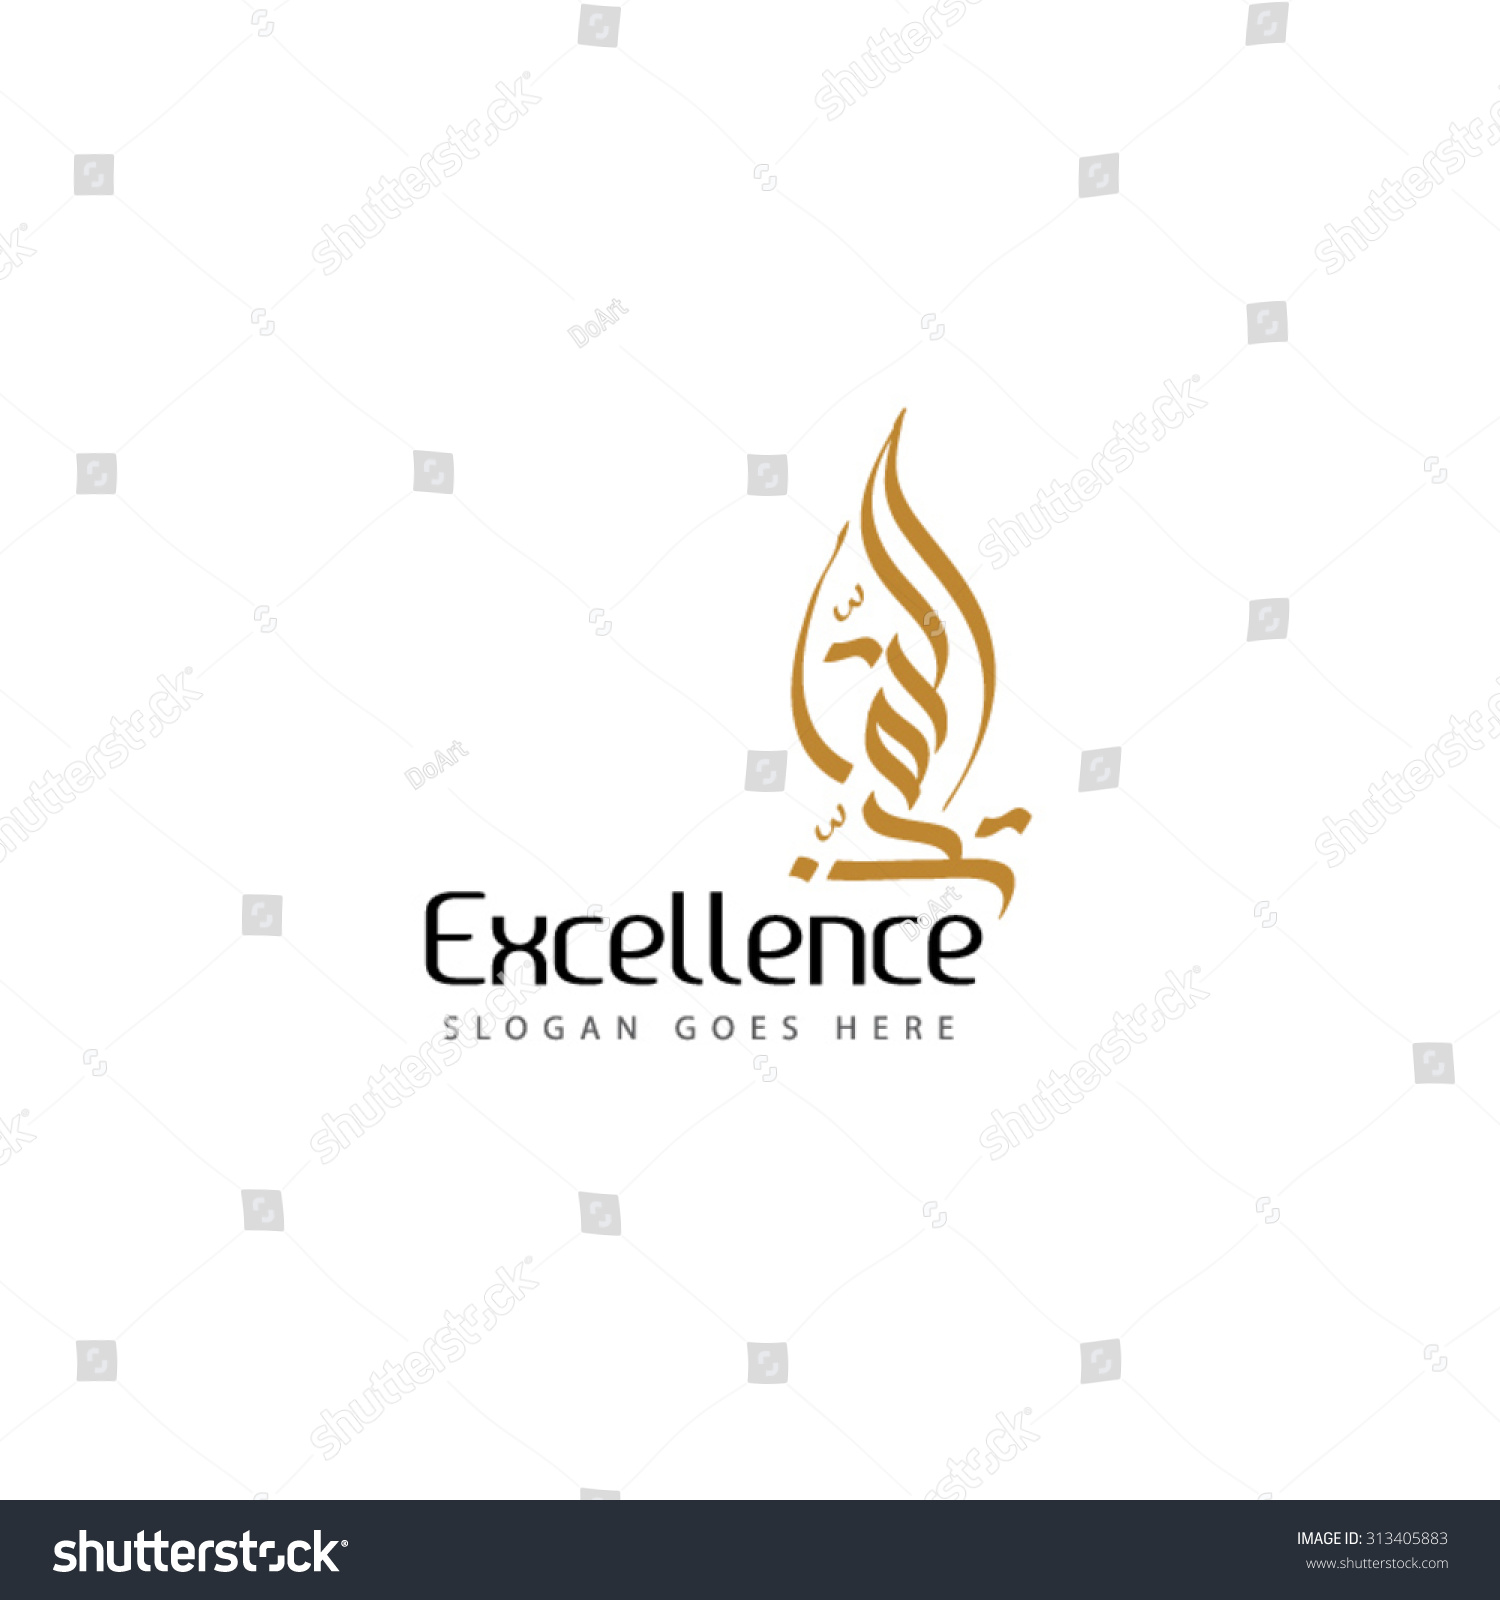 Excellence Logo Illustrator File Created By Stock Vector ...